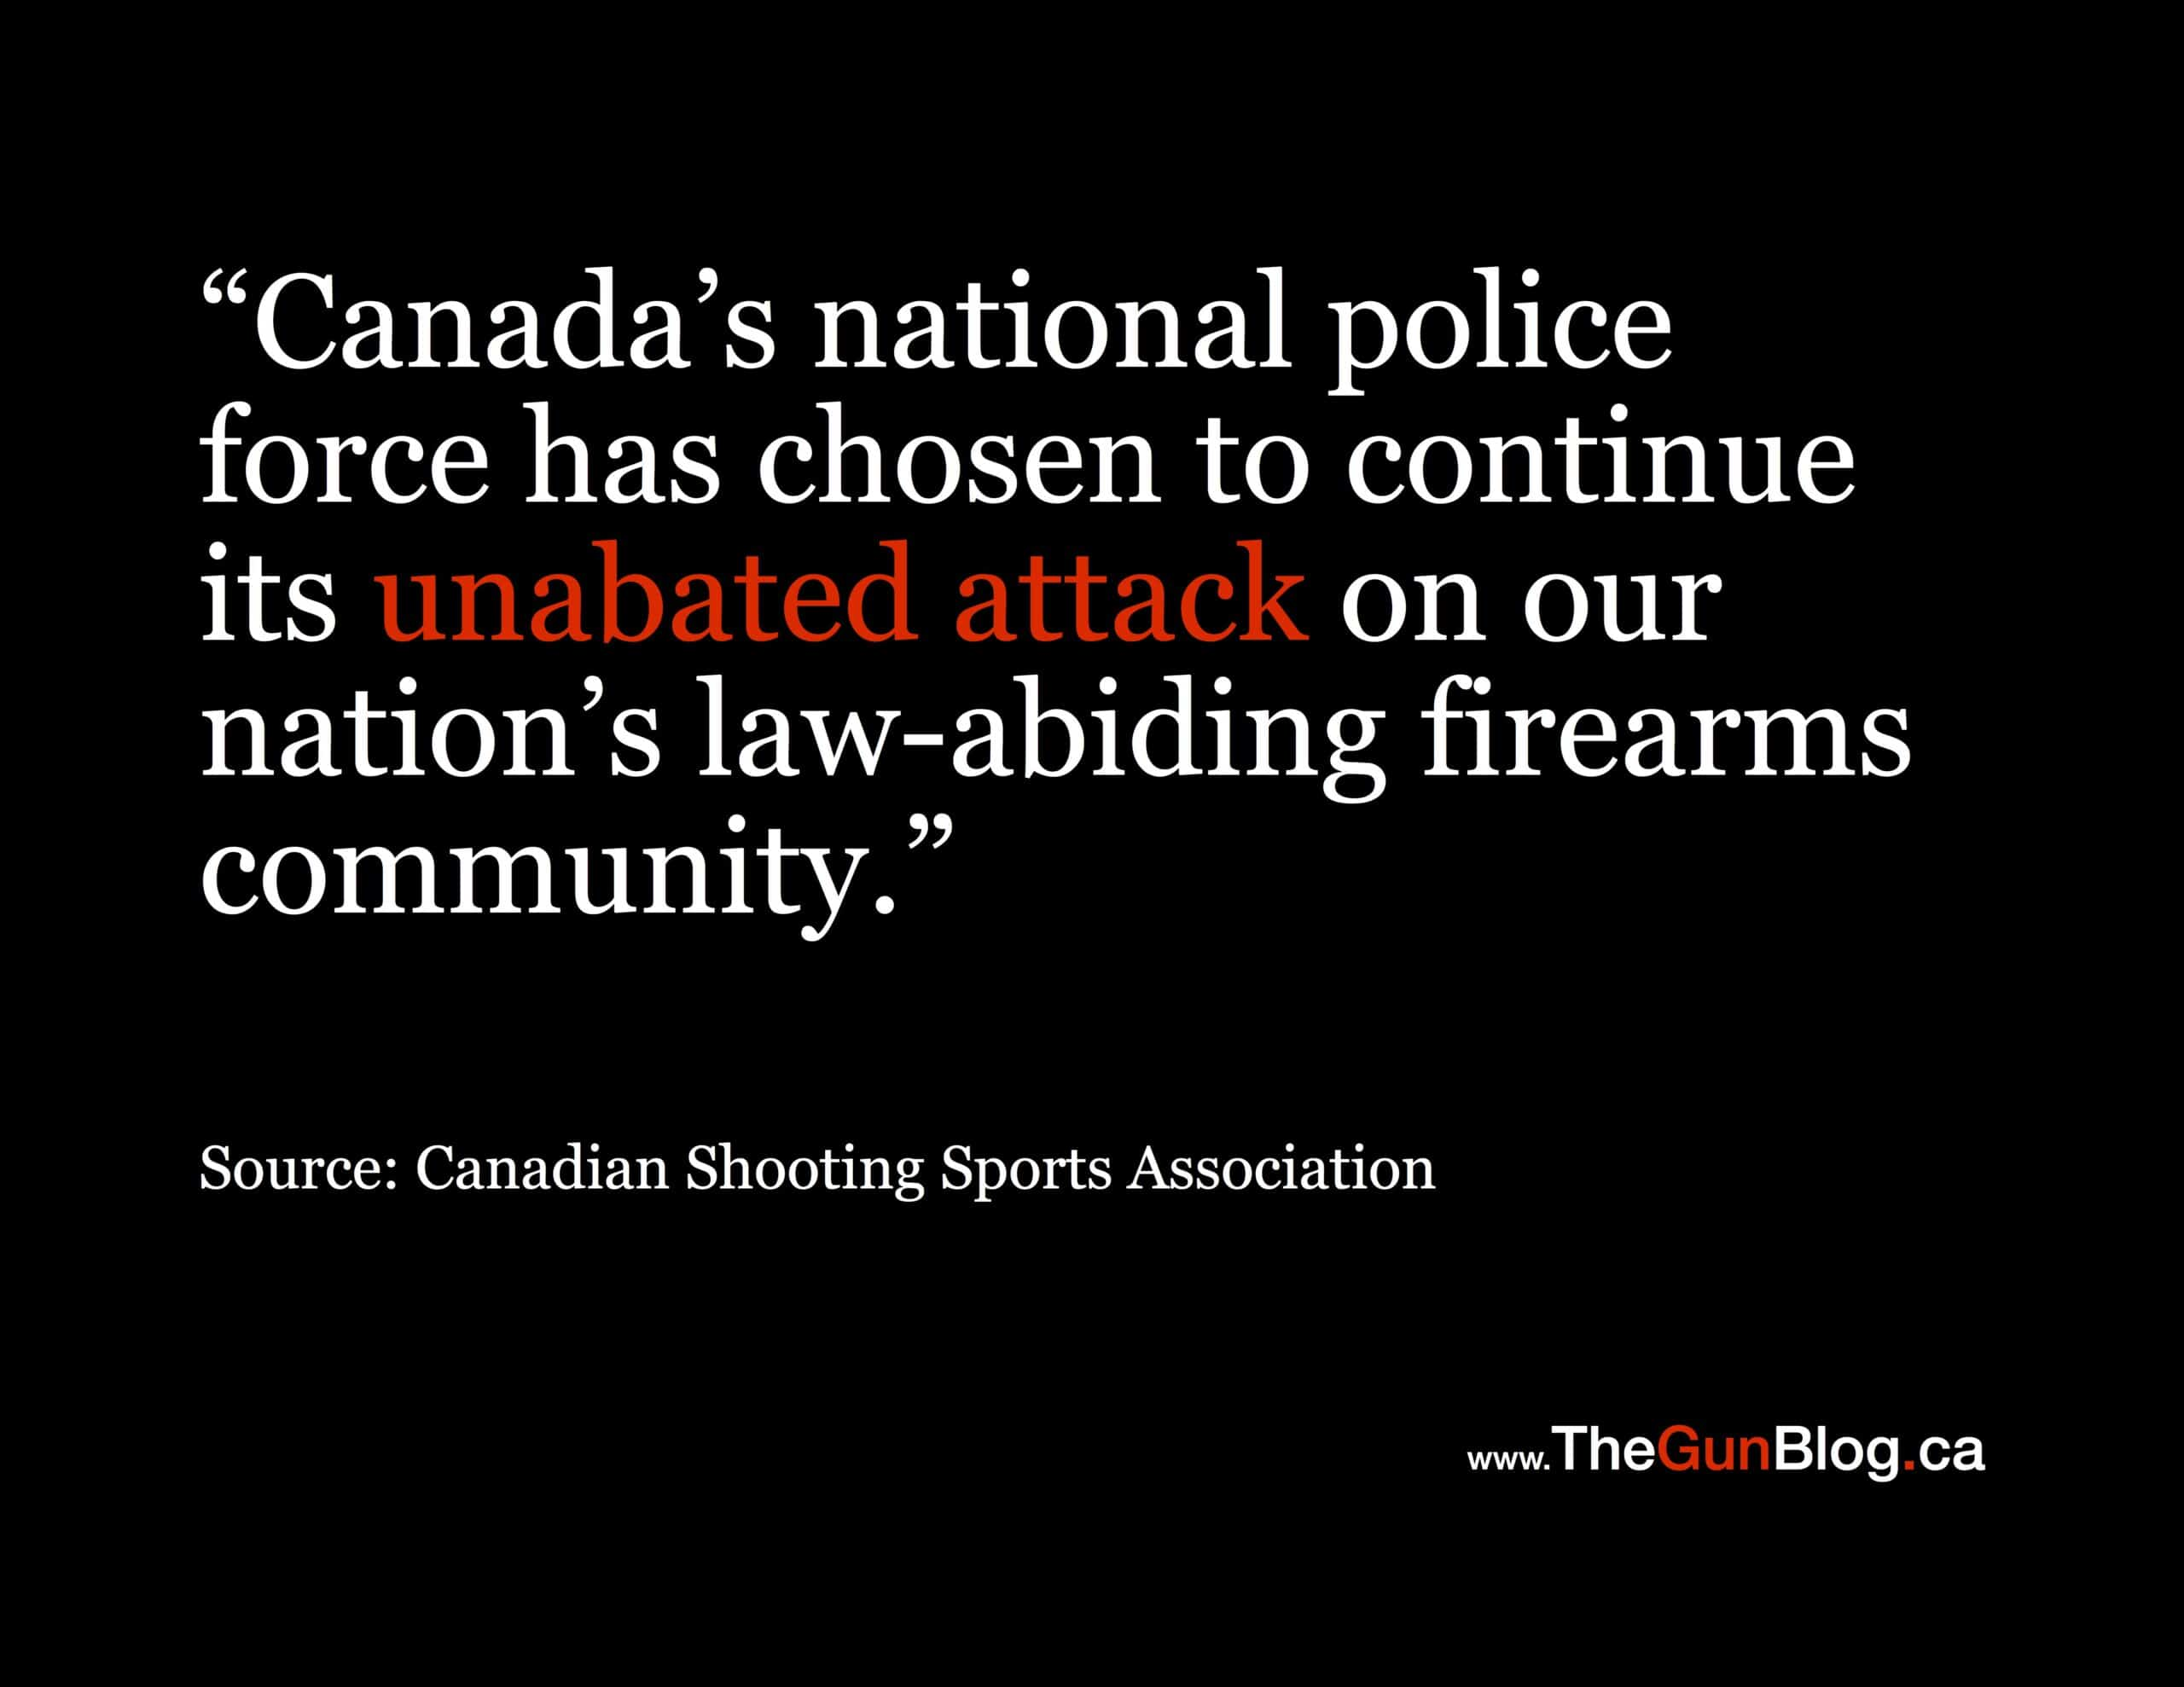 Canadian Shooting Sports Association national police attack firearms community